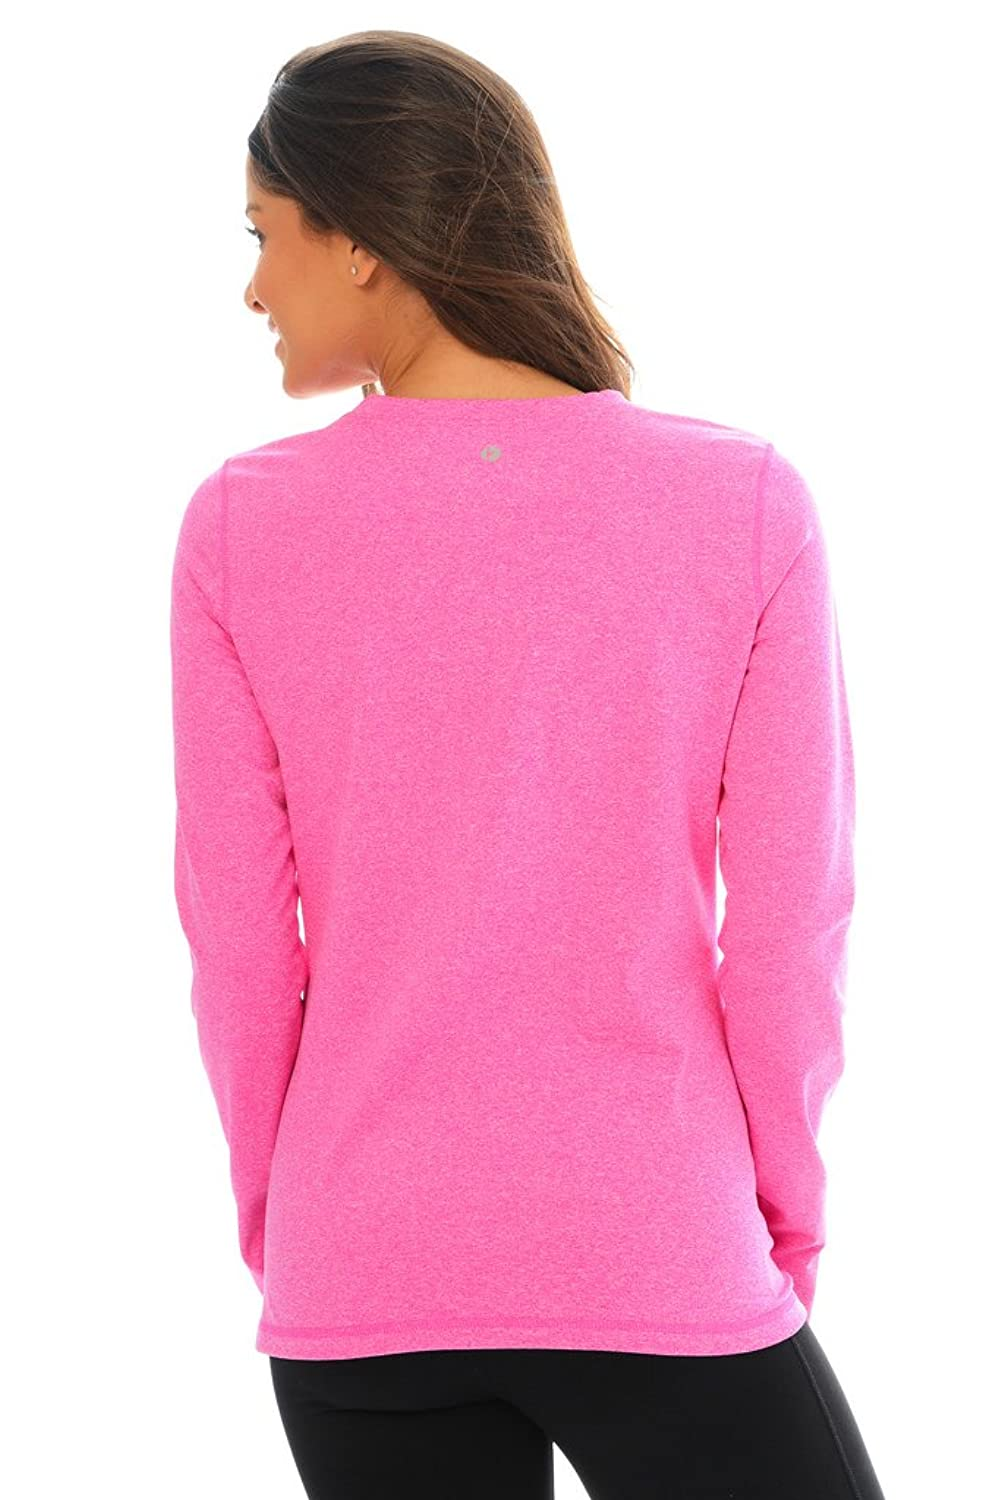 90 Degree By Reflex - Fleece Lined Shirt with Thumbholes